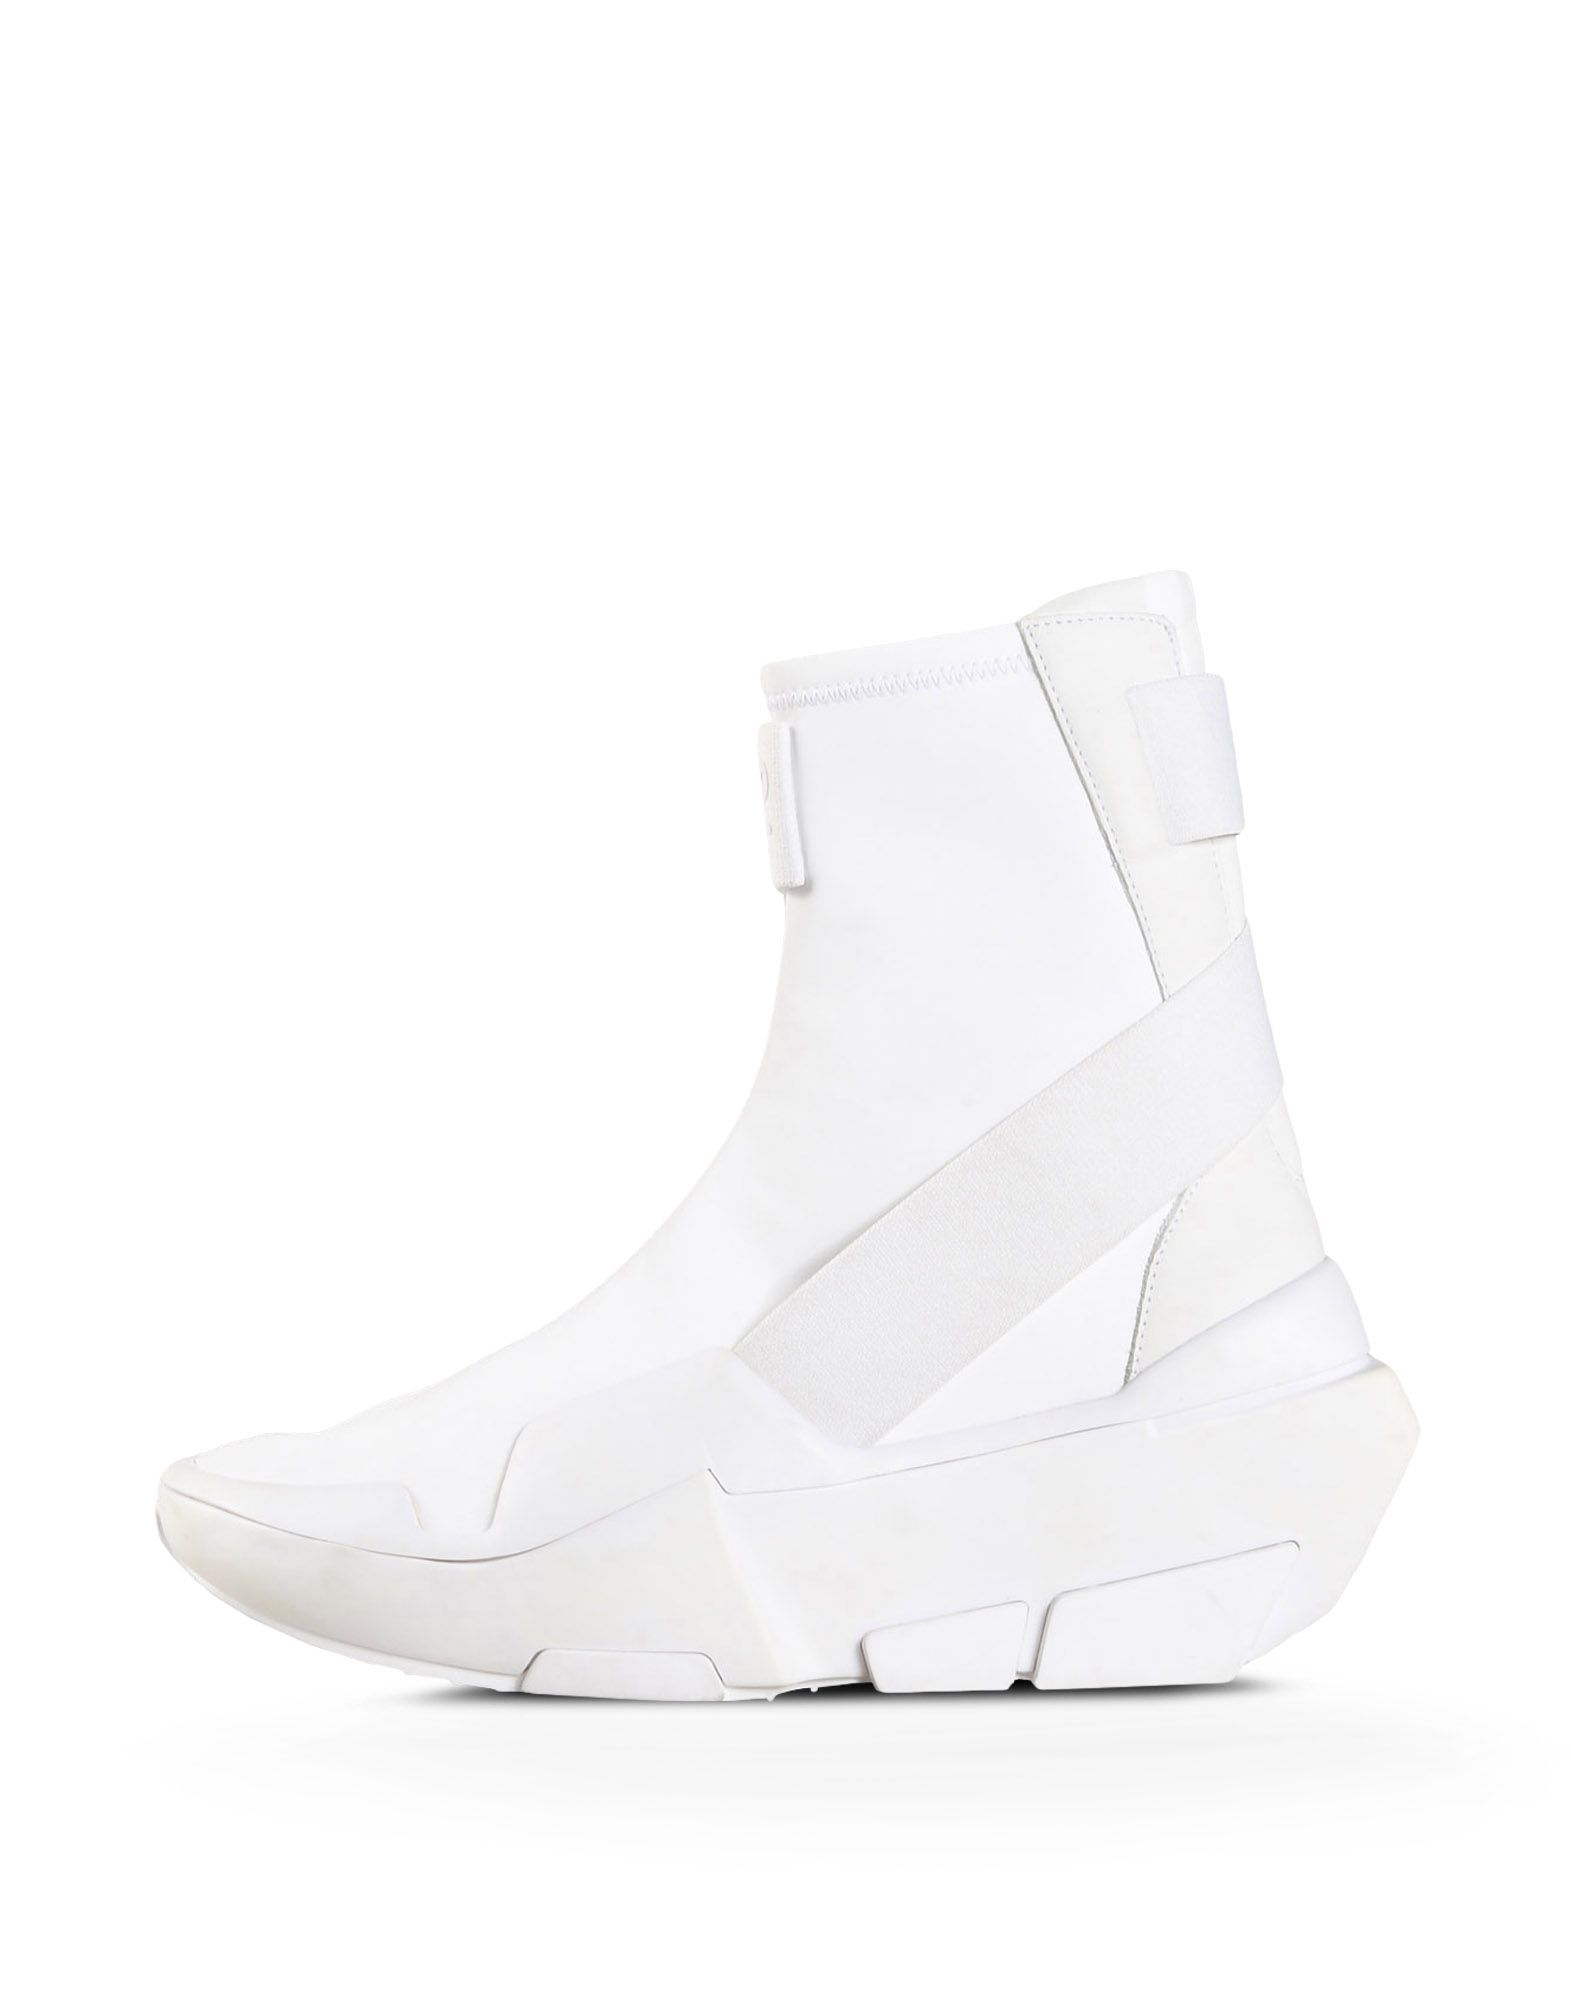 Y,3 MIRA BOOT CHAUSSURES femme Y,3 adidas